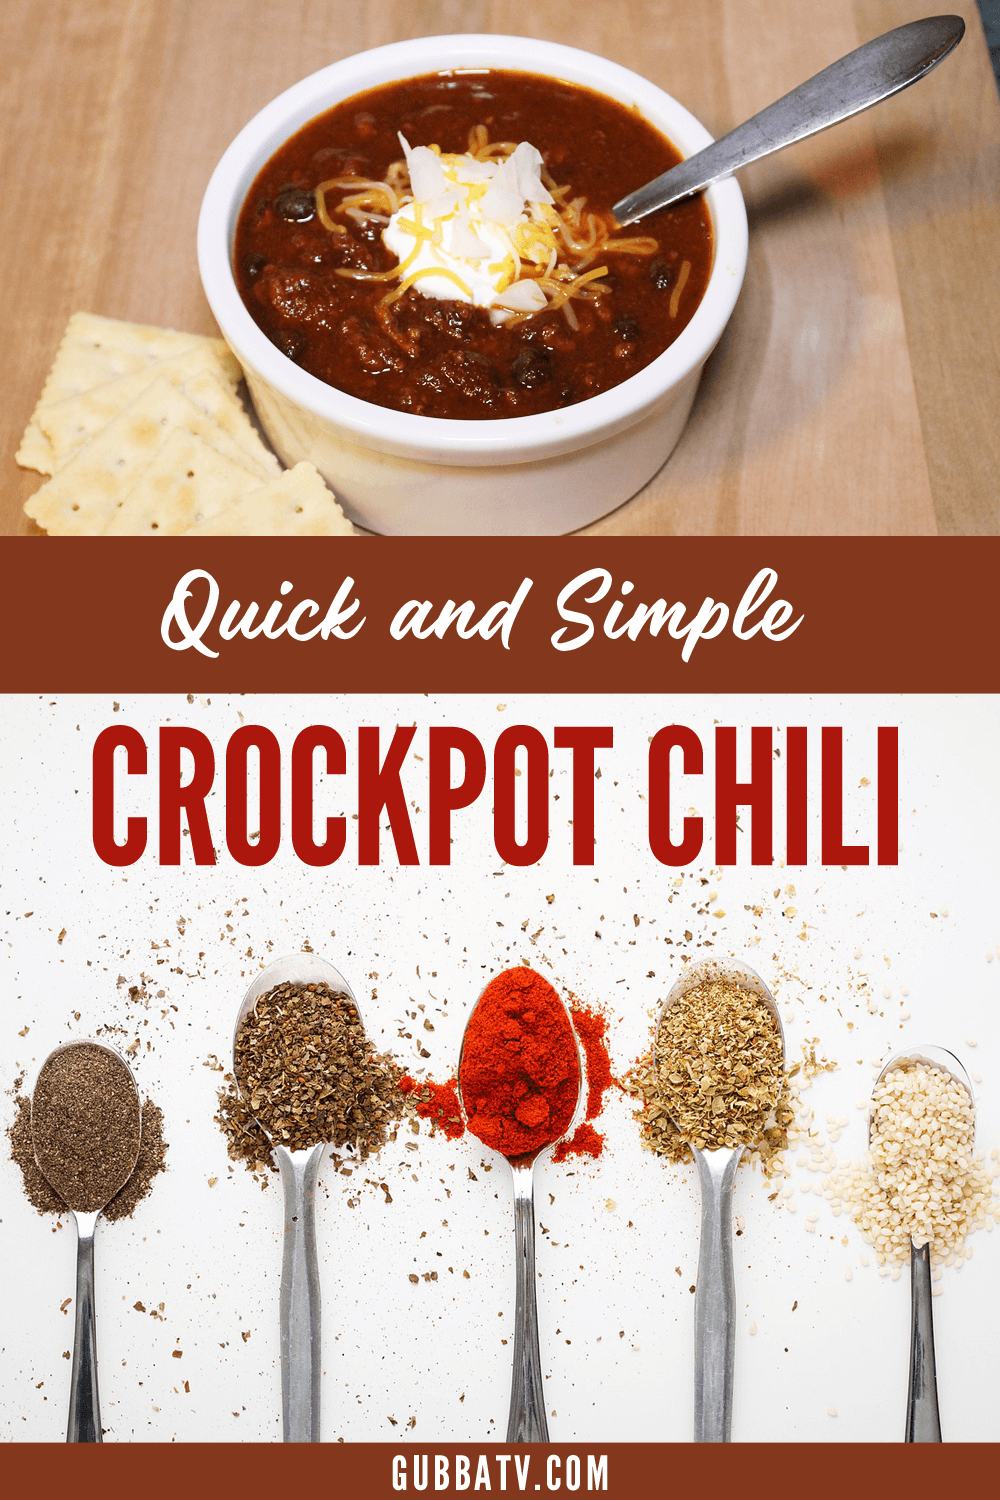 Quick and Simple Crockpot Chili